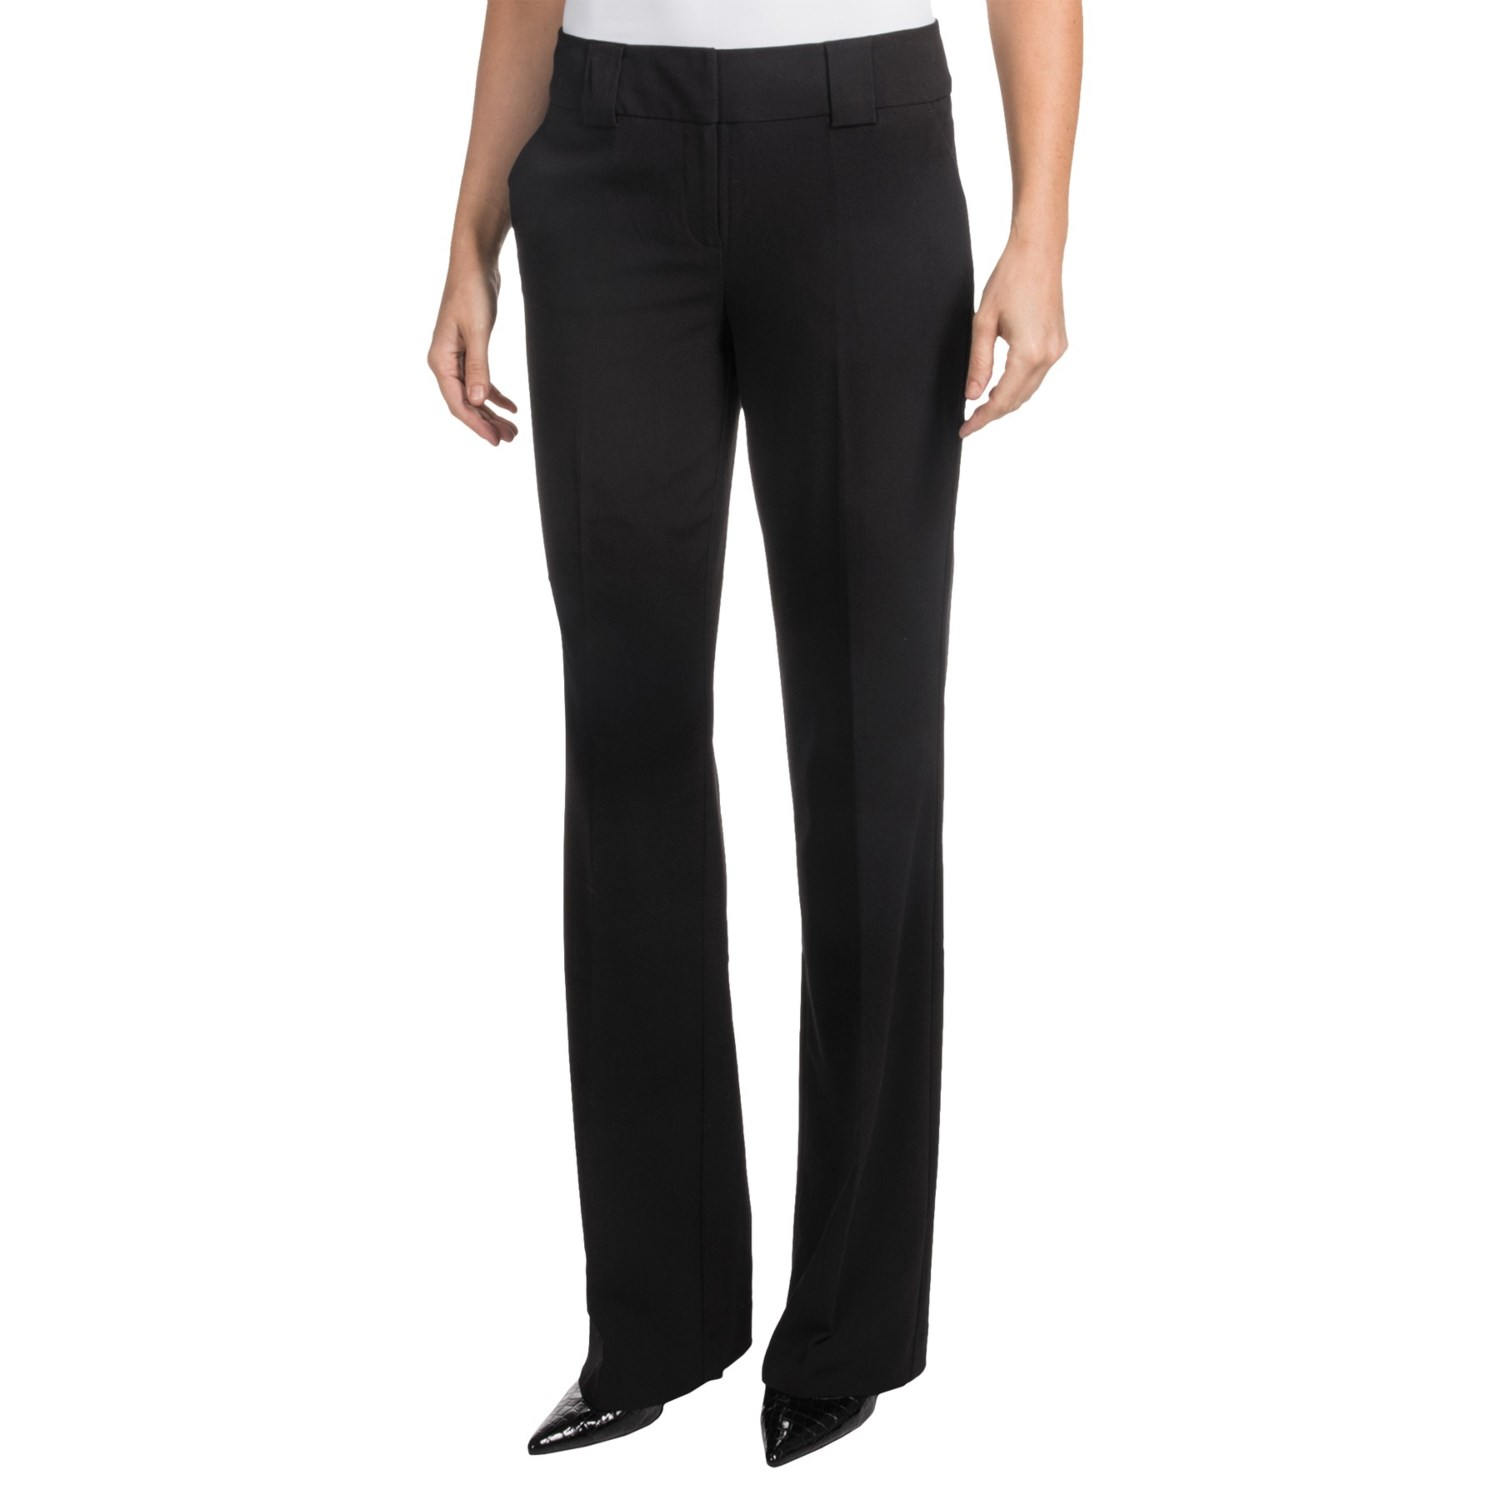 Perfect Black Dress Pants For Women Black Dress Pants For Women  All Women